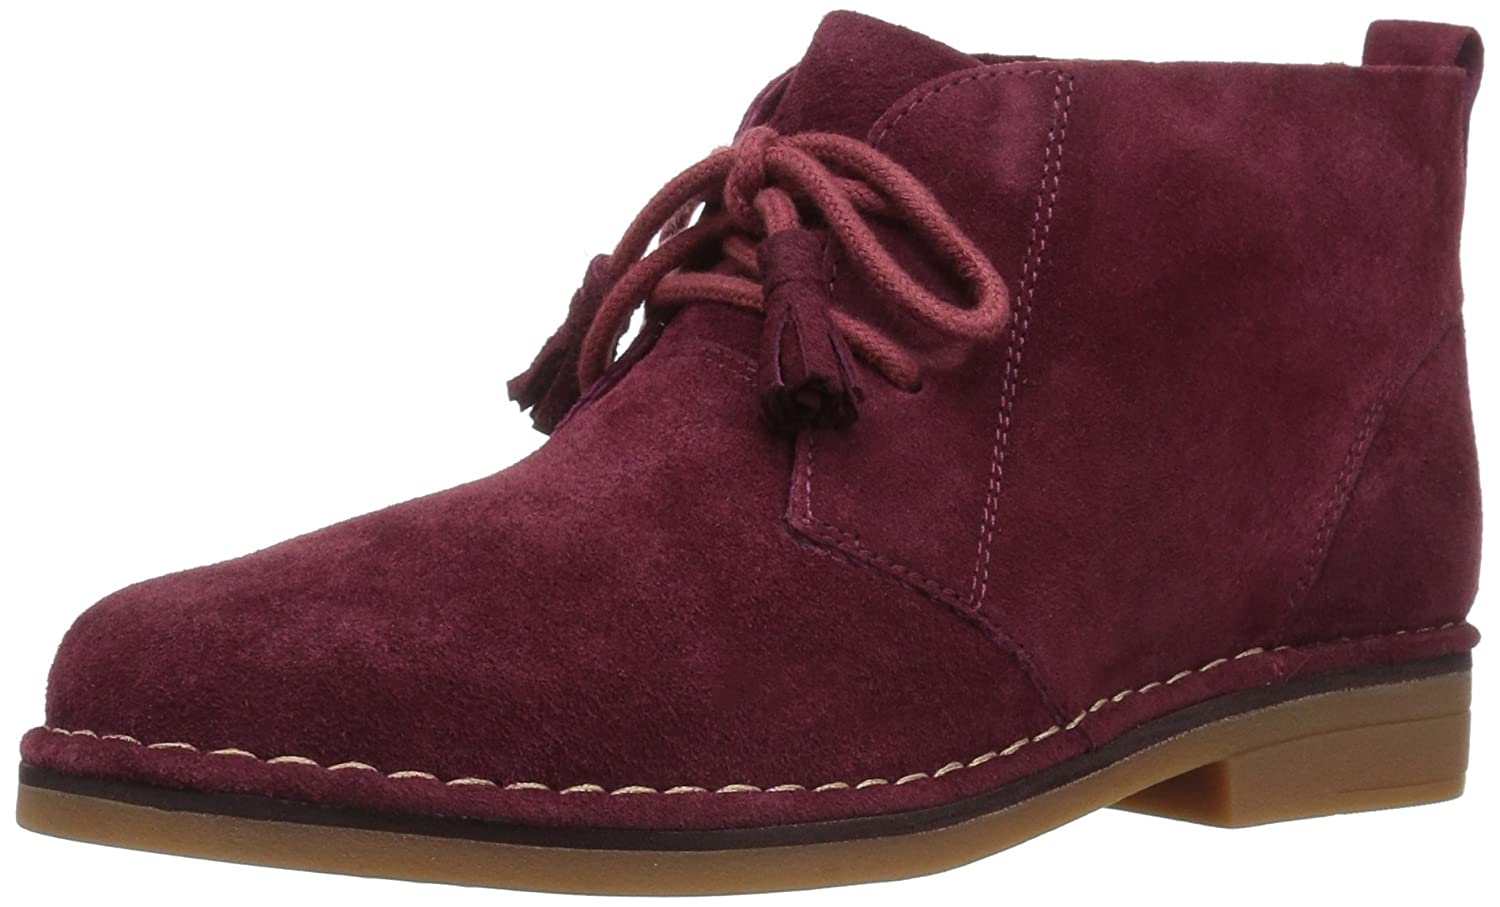 Hush Puppies Women's Cyra Catelyn Ankle Bootie B01N39DYAK 6.5 B(M) US|Burgundy